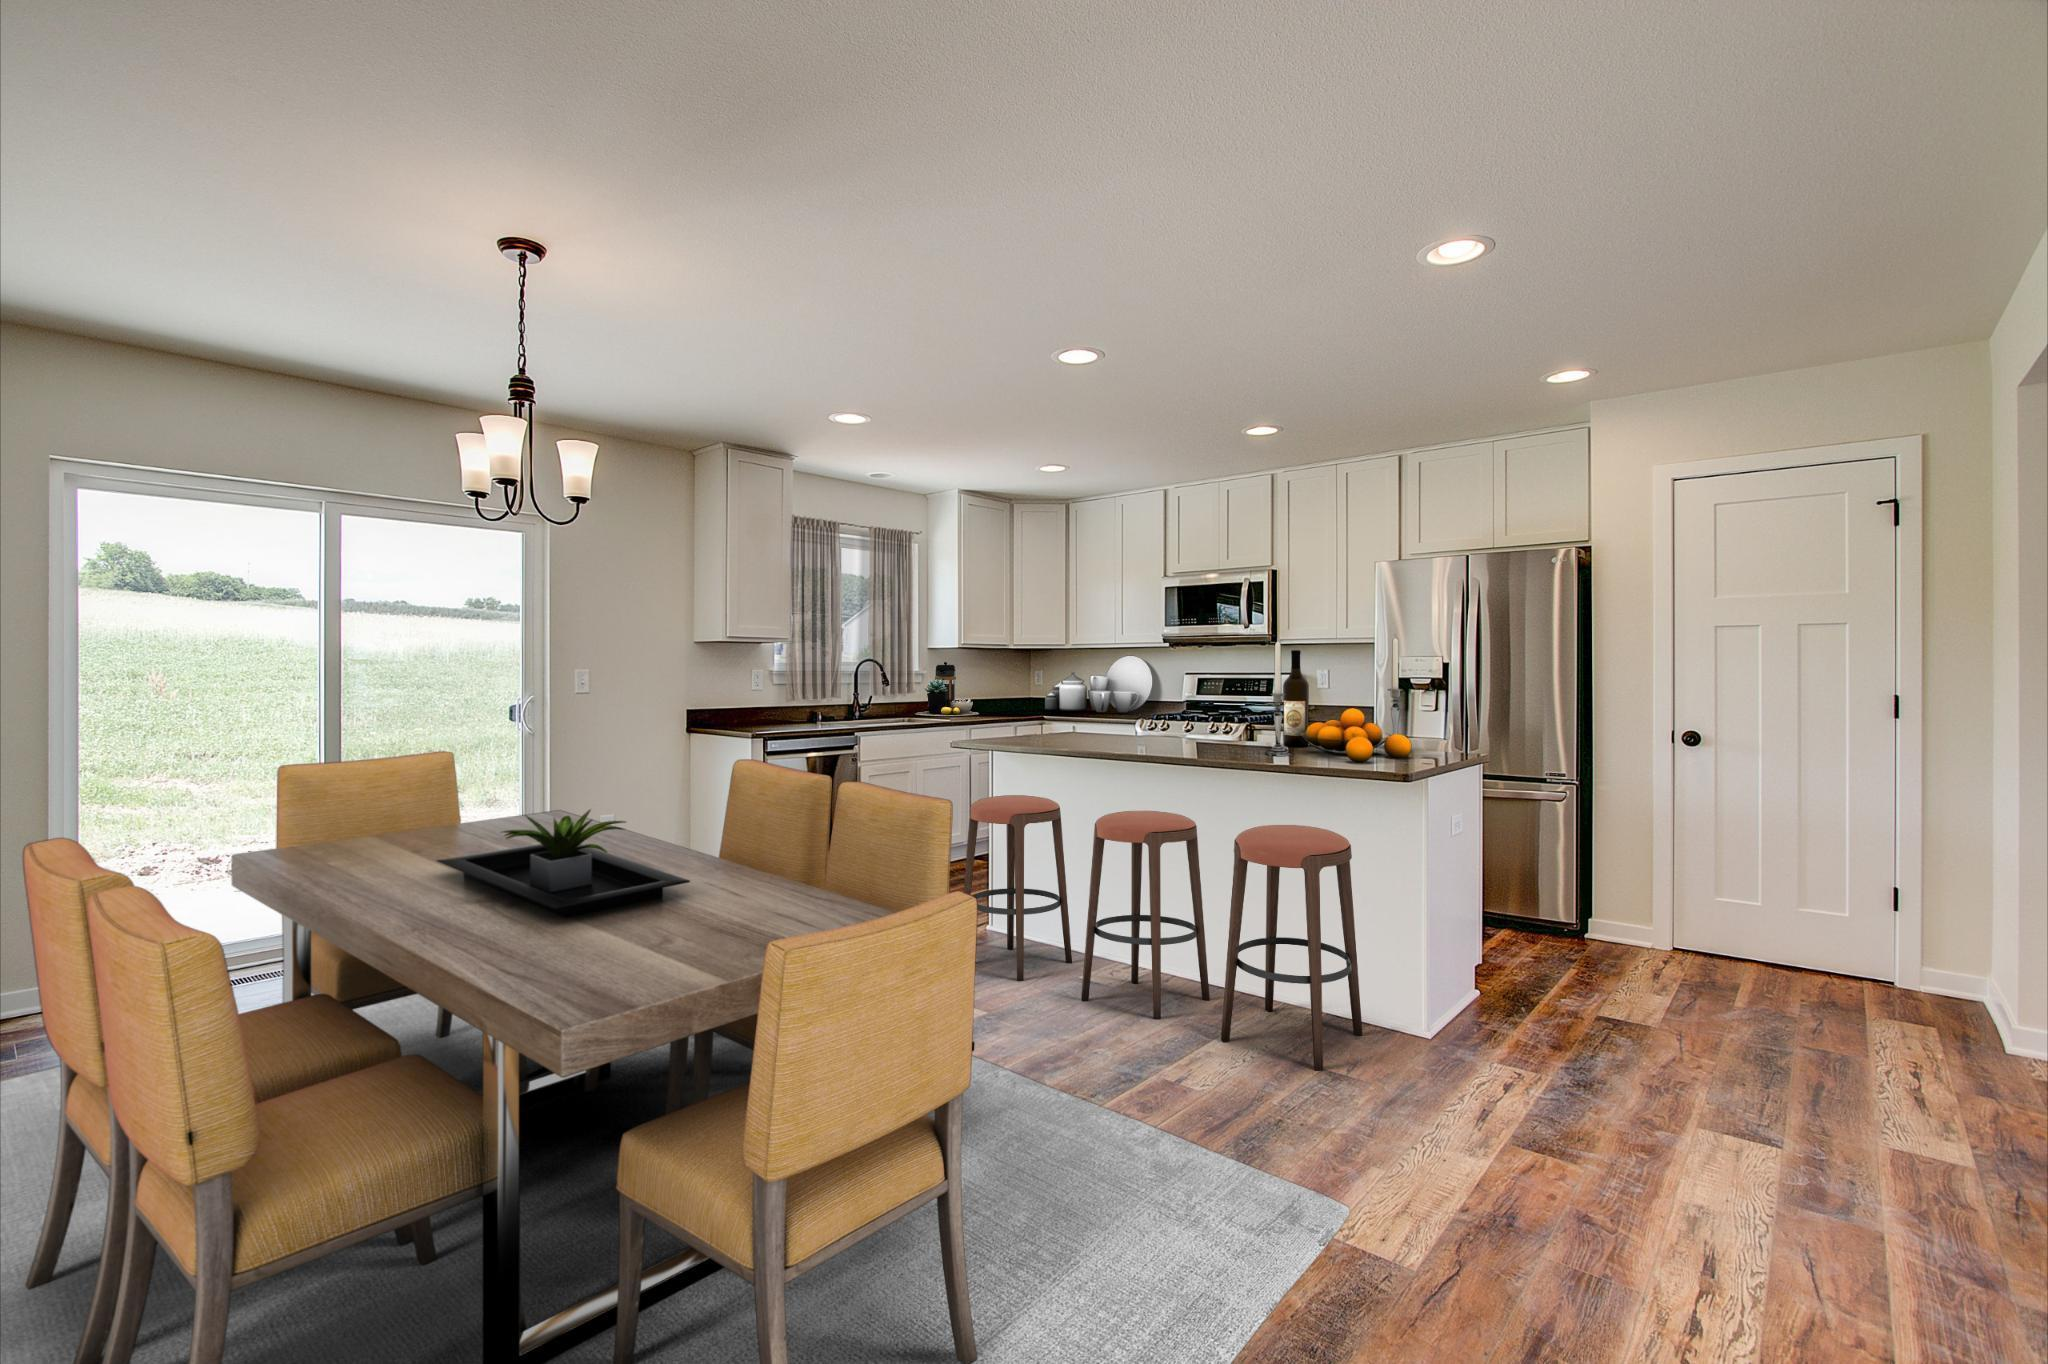 Kitchen featured in the Dover By Harbor Homes in Washington-Fond du Lac, WI